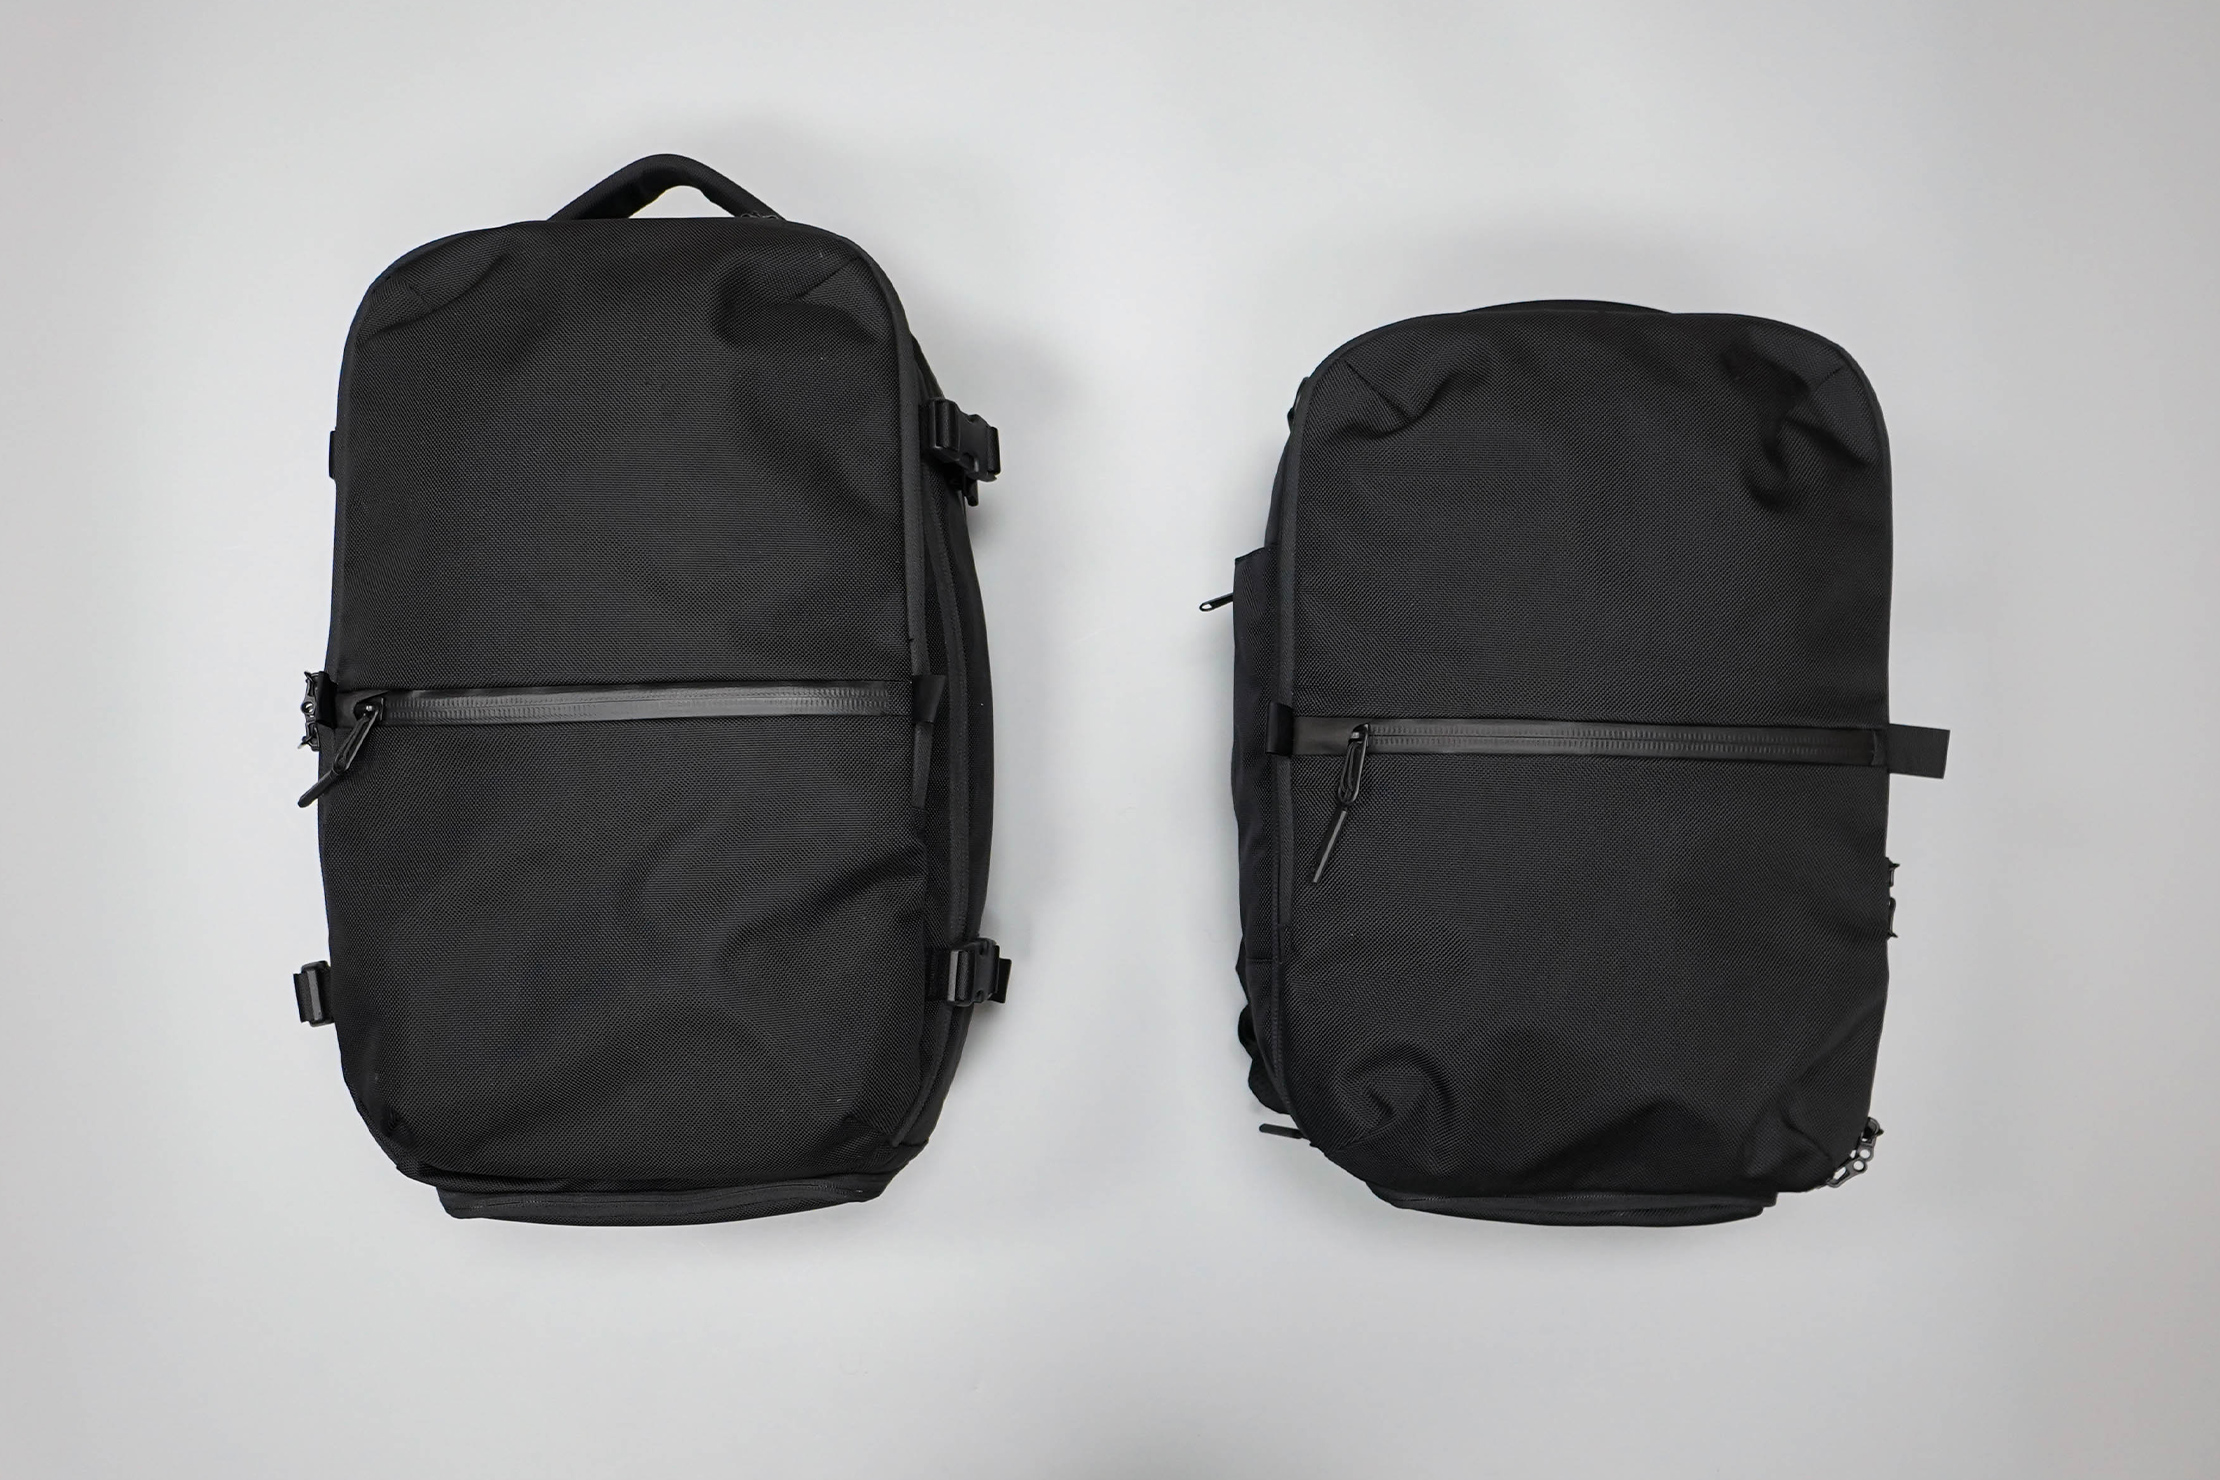 Aer Travel Pack 2 Small And Large